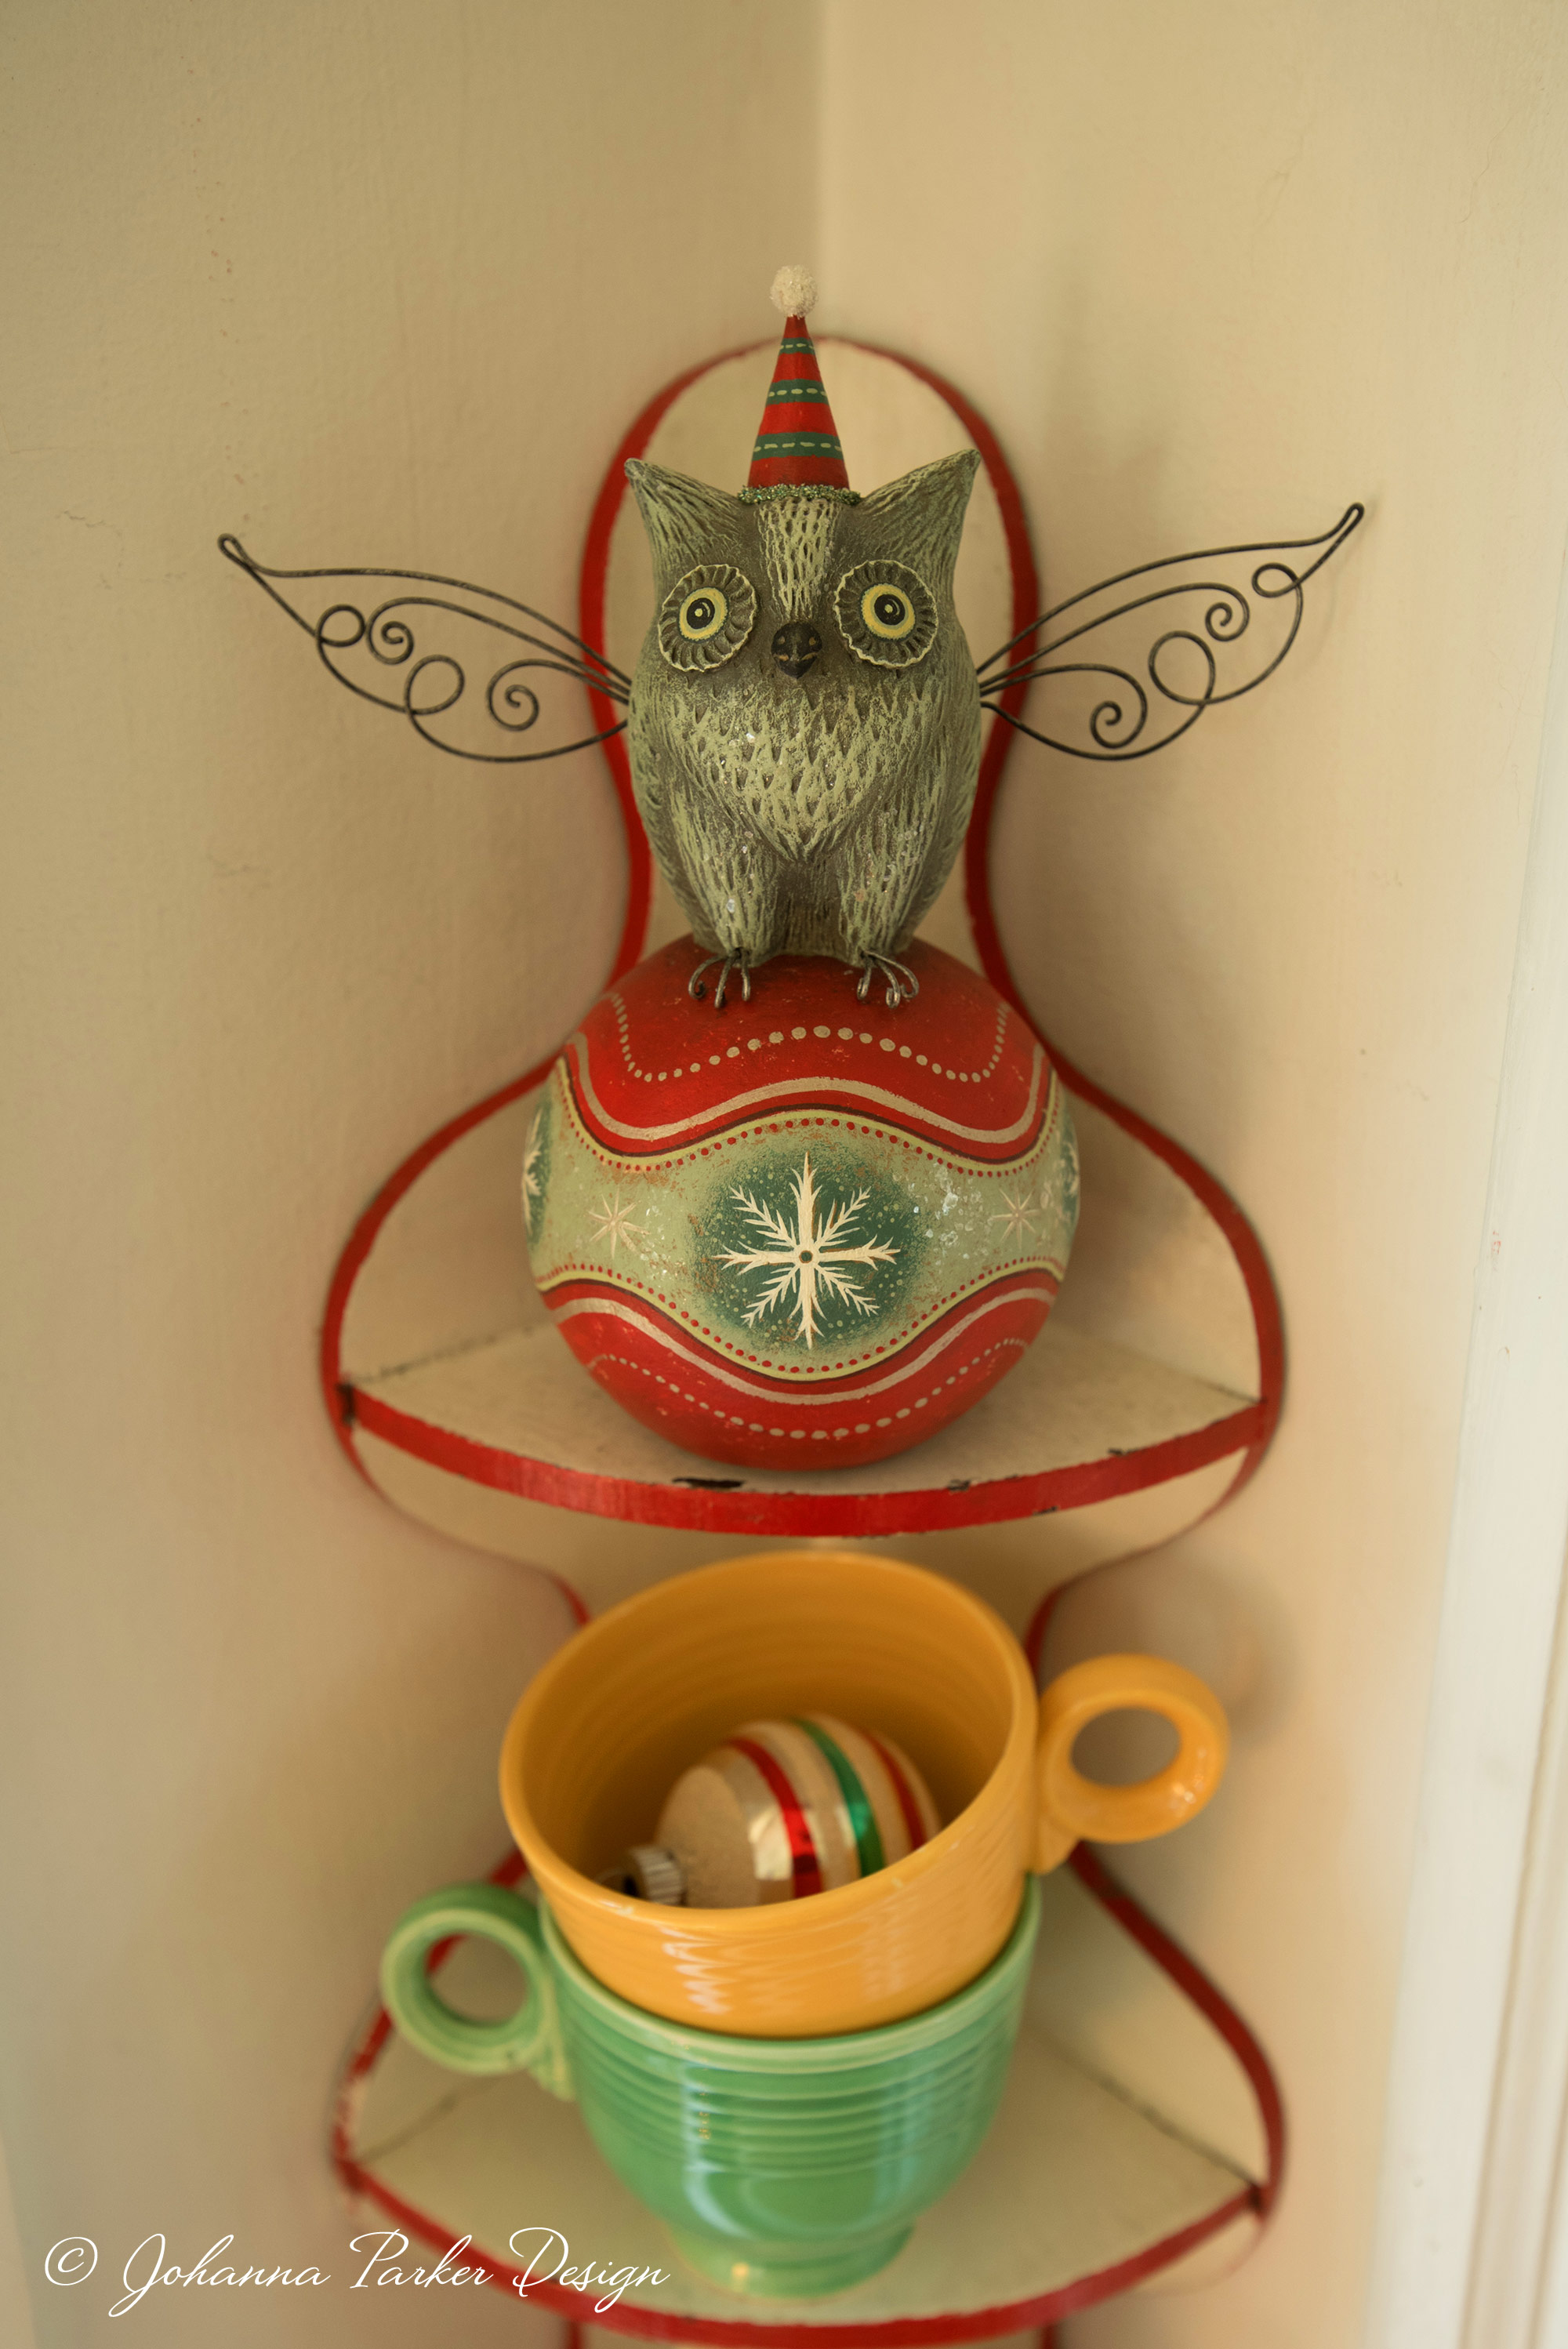 An original owl sculpture, perched atop a decorated ball, keeps watch over my studio space.